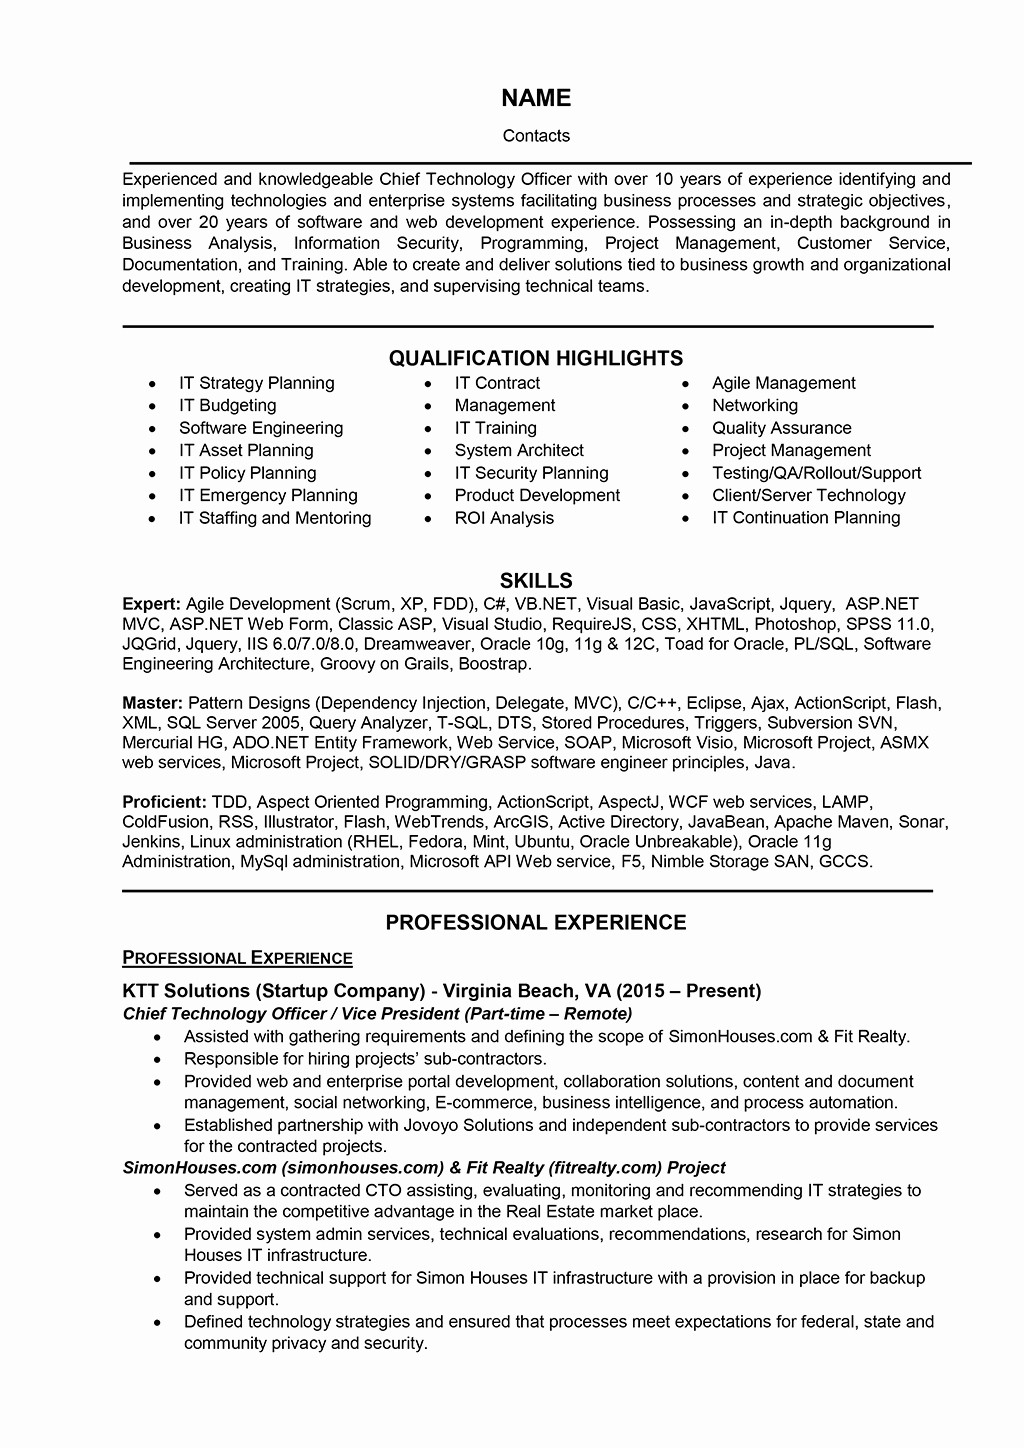 Apache Resume Template - District Manager Resume New 20 Accounting Manager Resume Sample